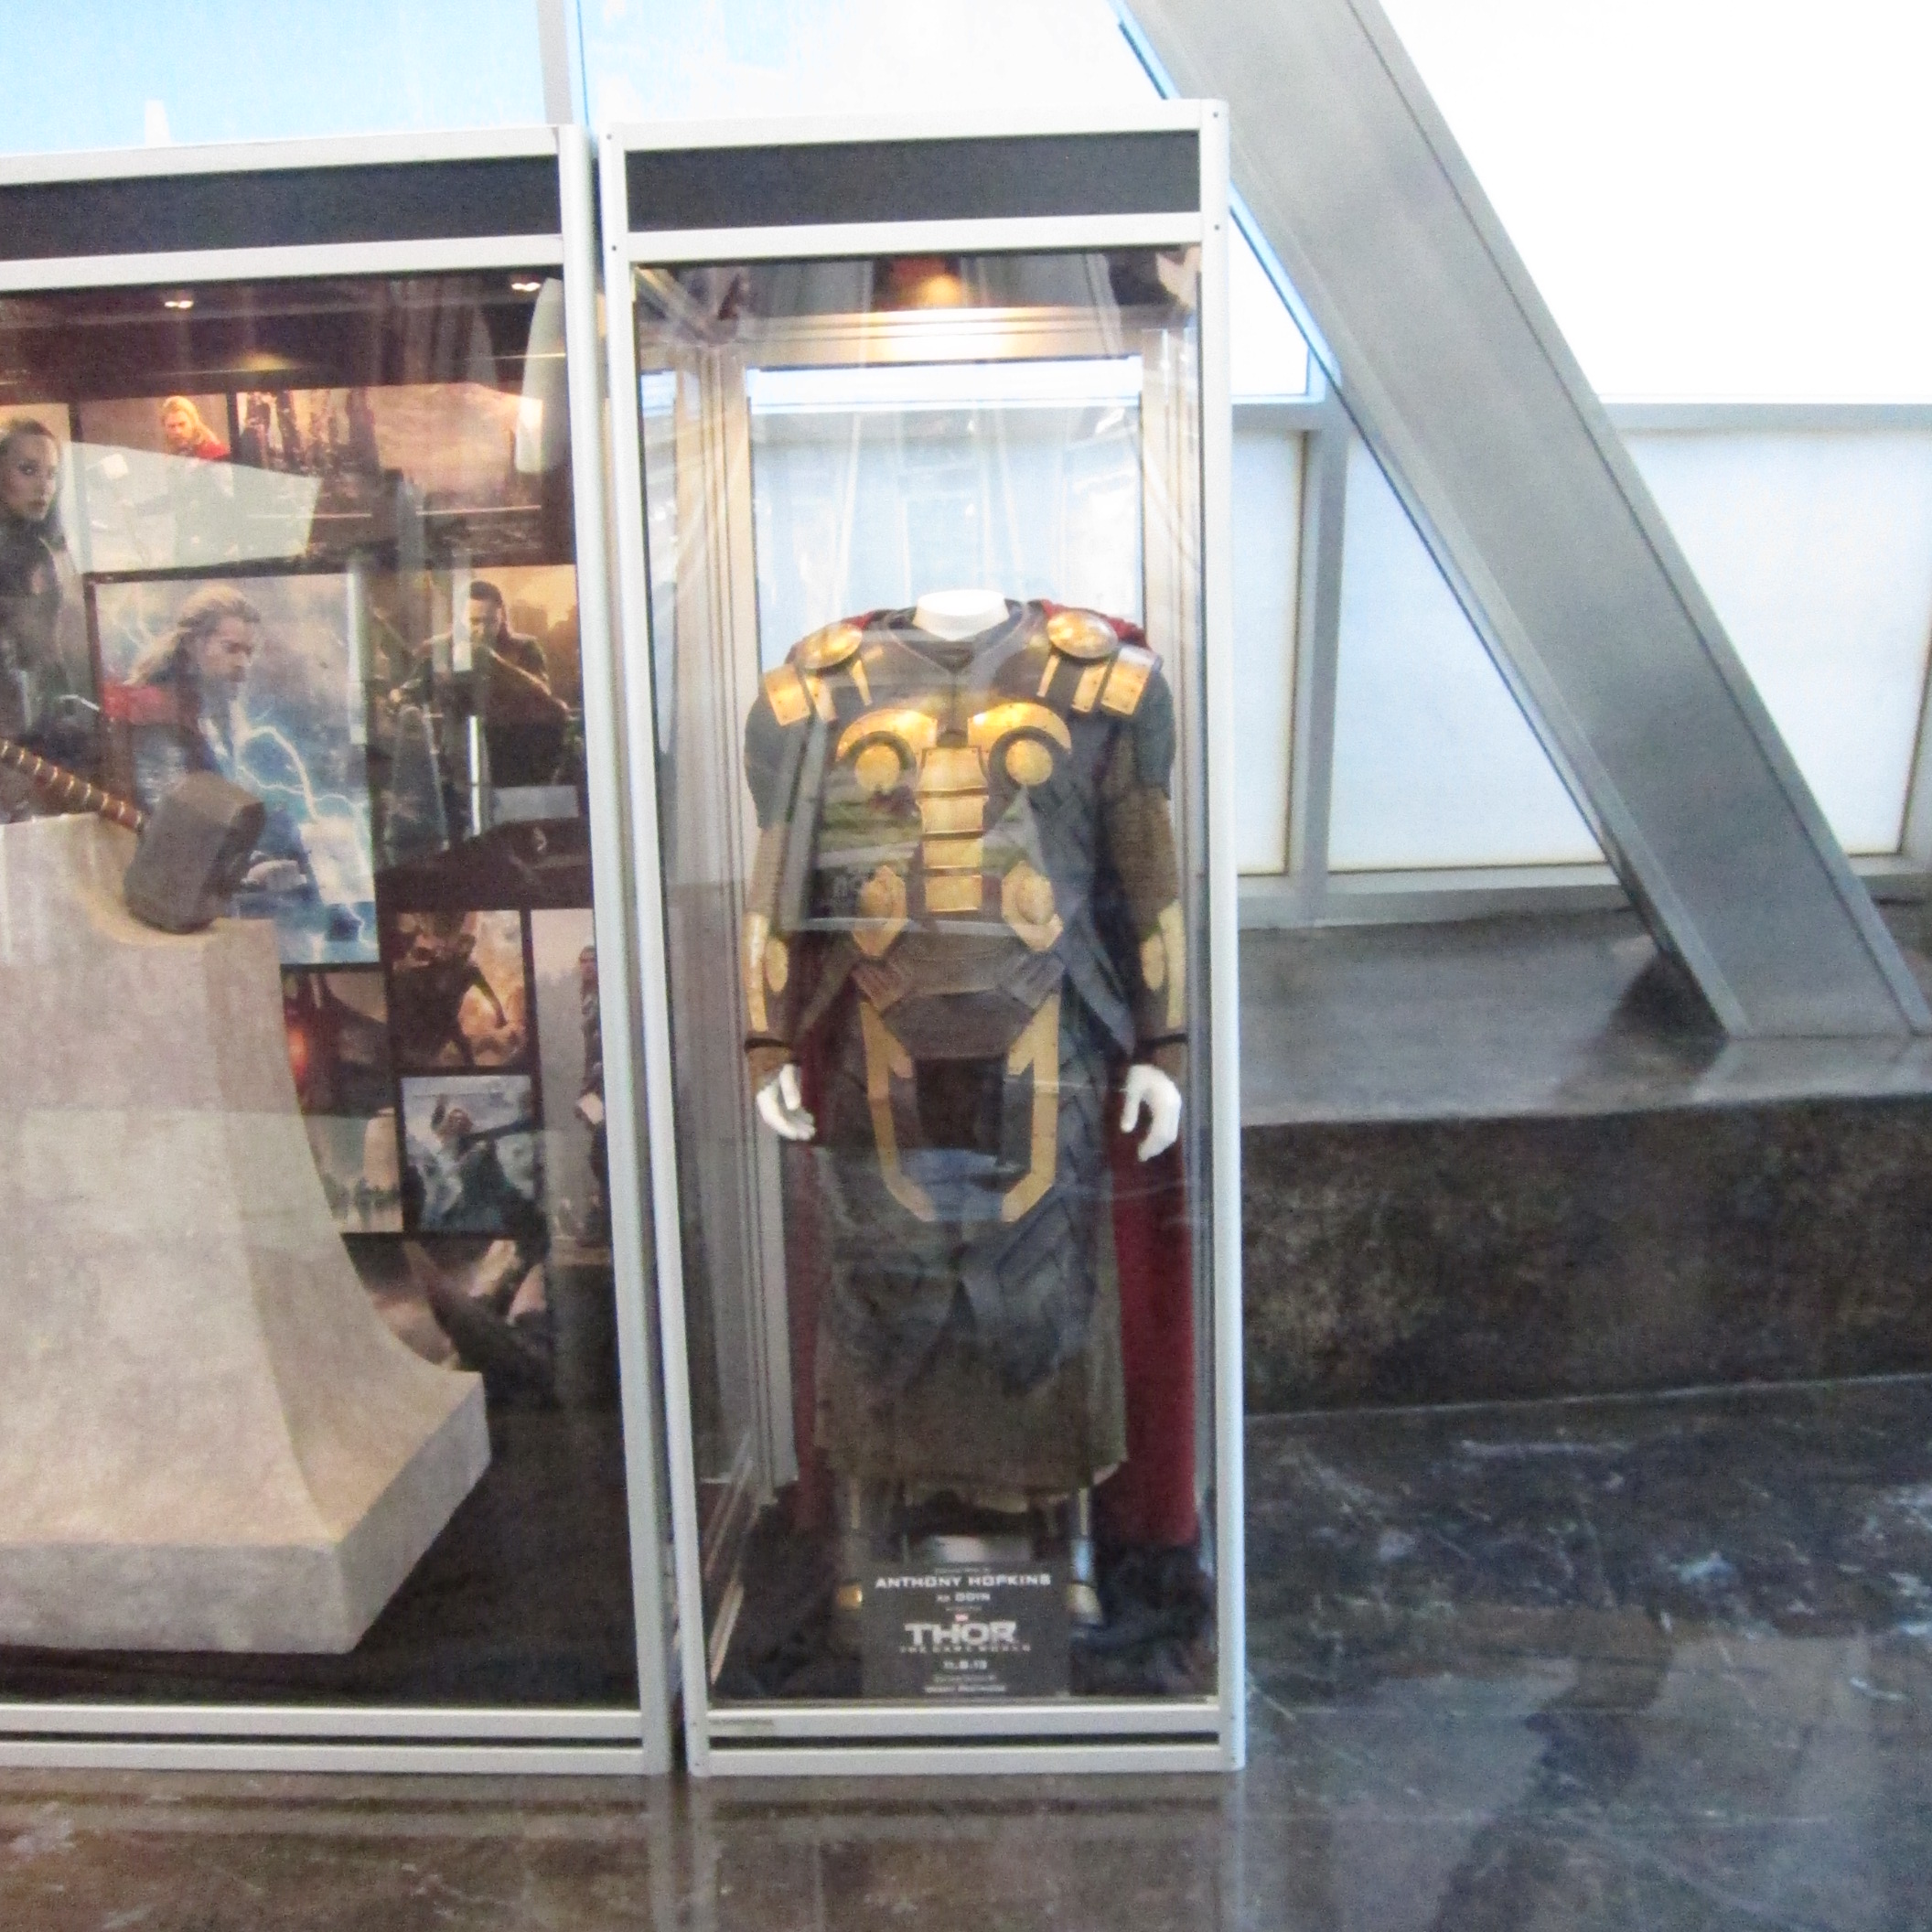 Anthony Hopkins' costume as worn in THOR:  THE DARK WORLD.